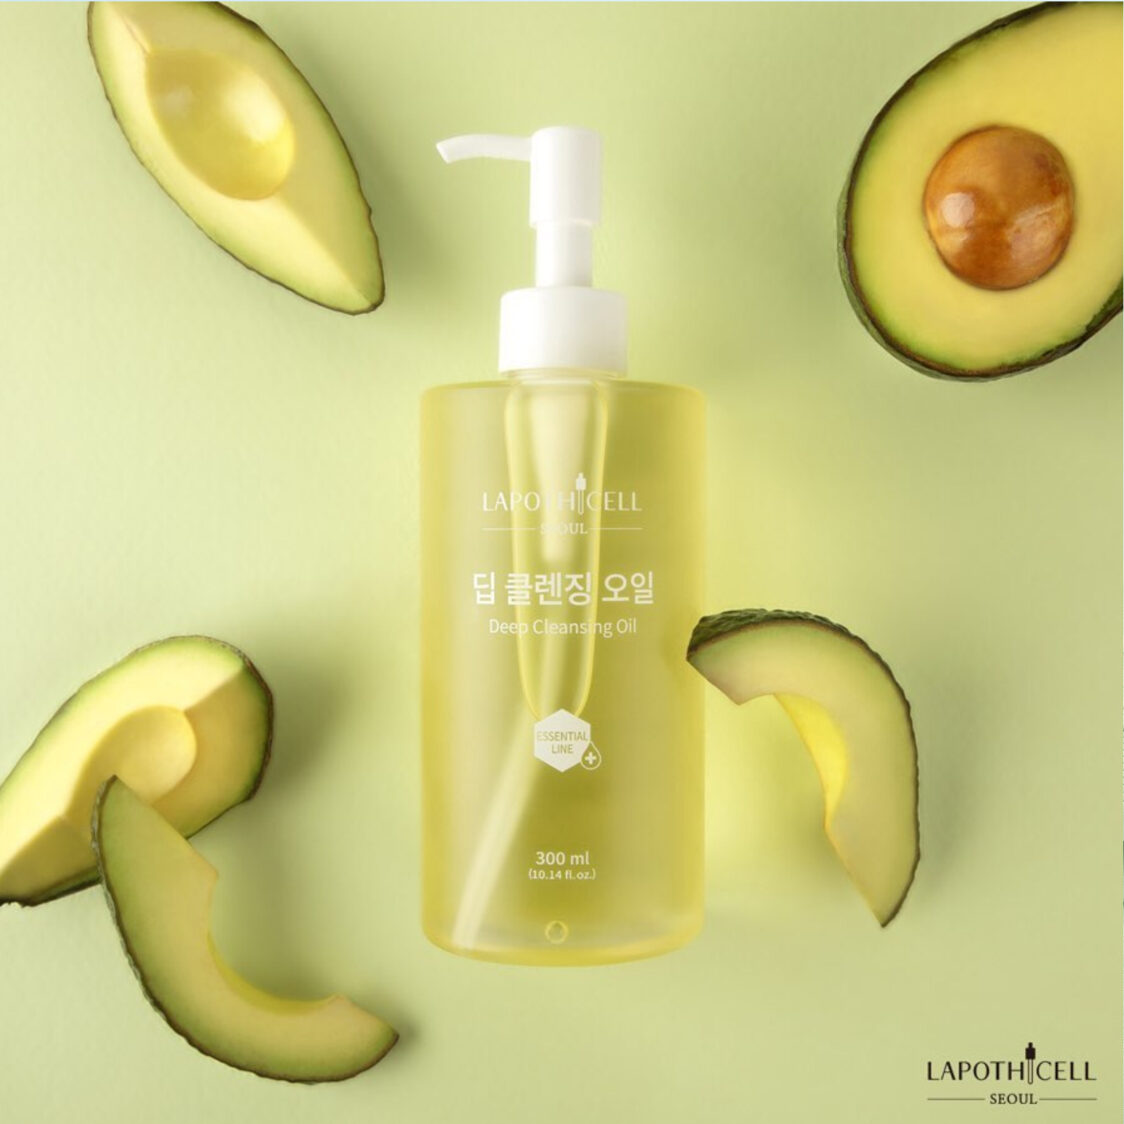 Lapothicell Deep Cleansing Oil 300ml